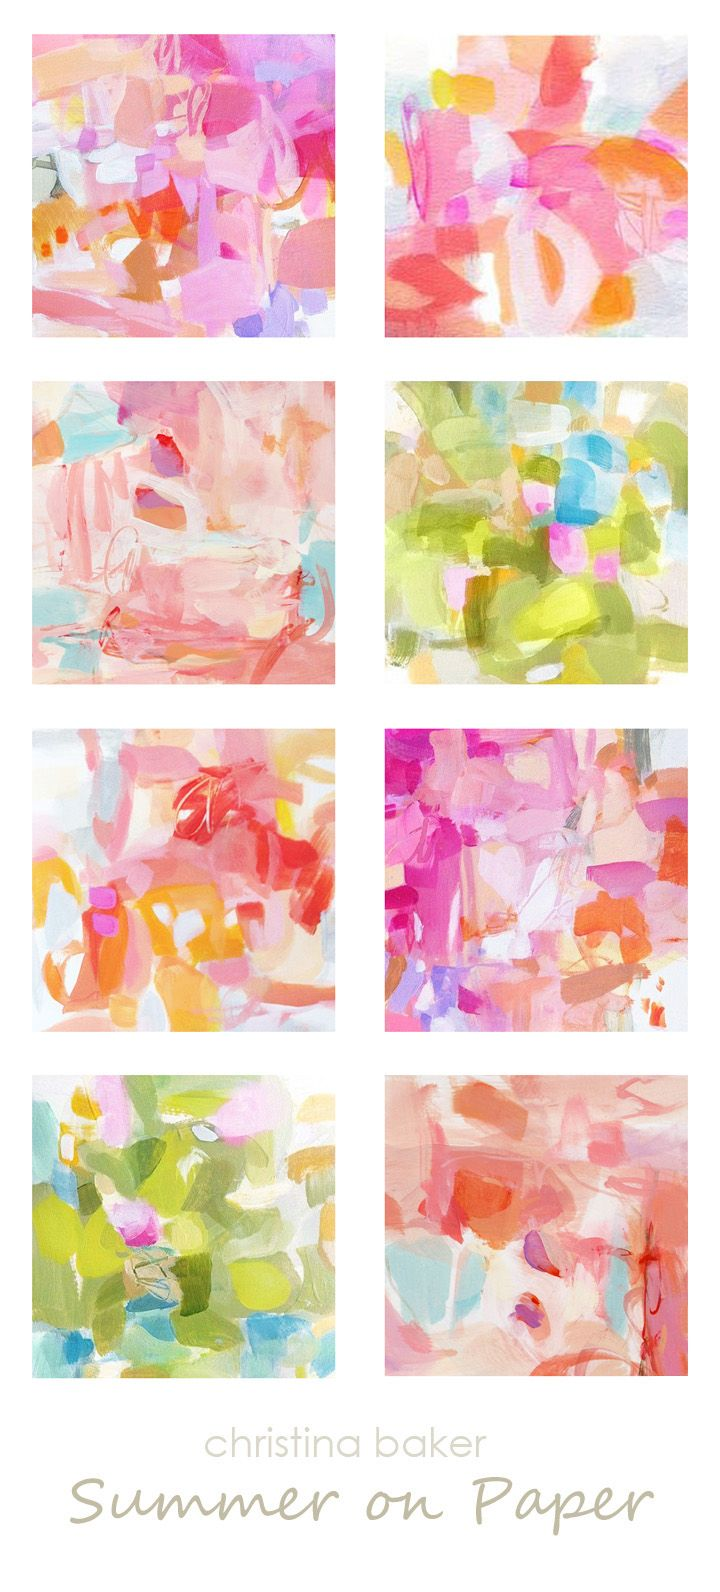 Christina Baker Artist Blog: Summer on Paper .